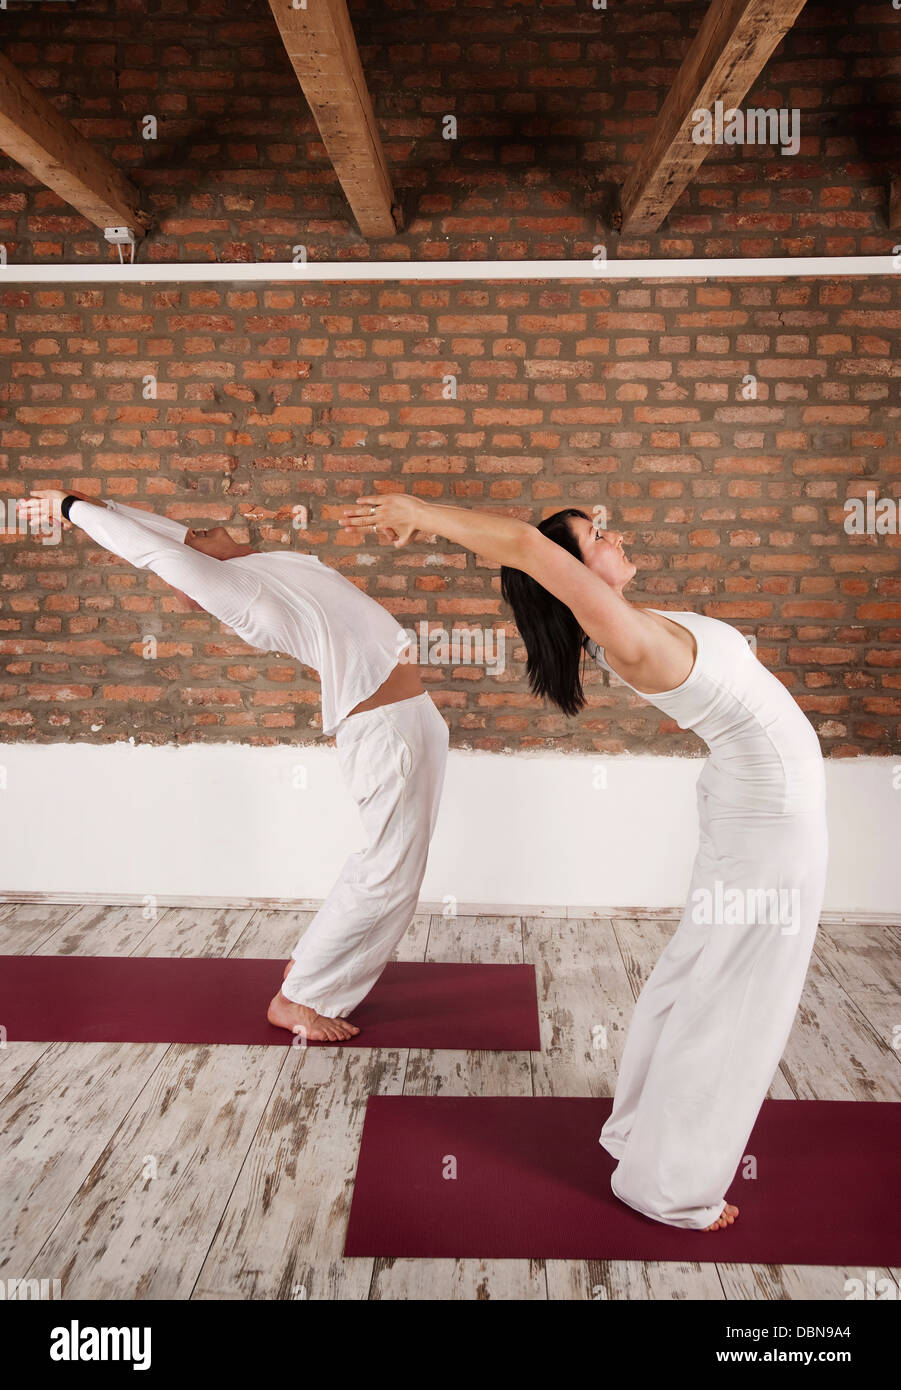 Couple in Yoga Pose - Stock Image